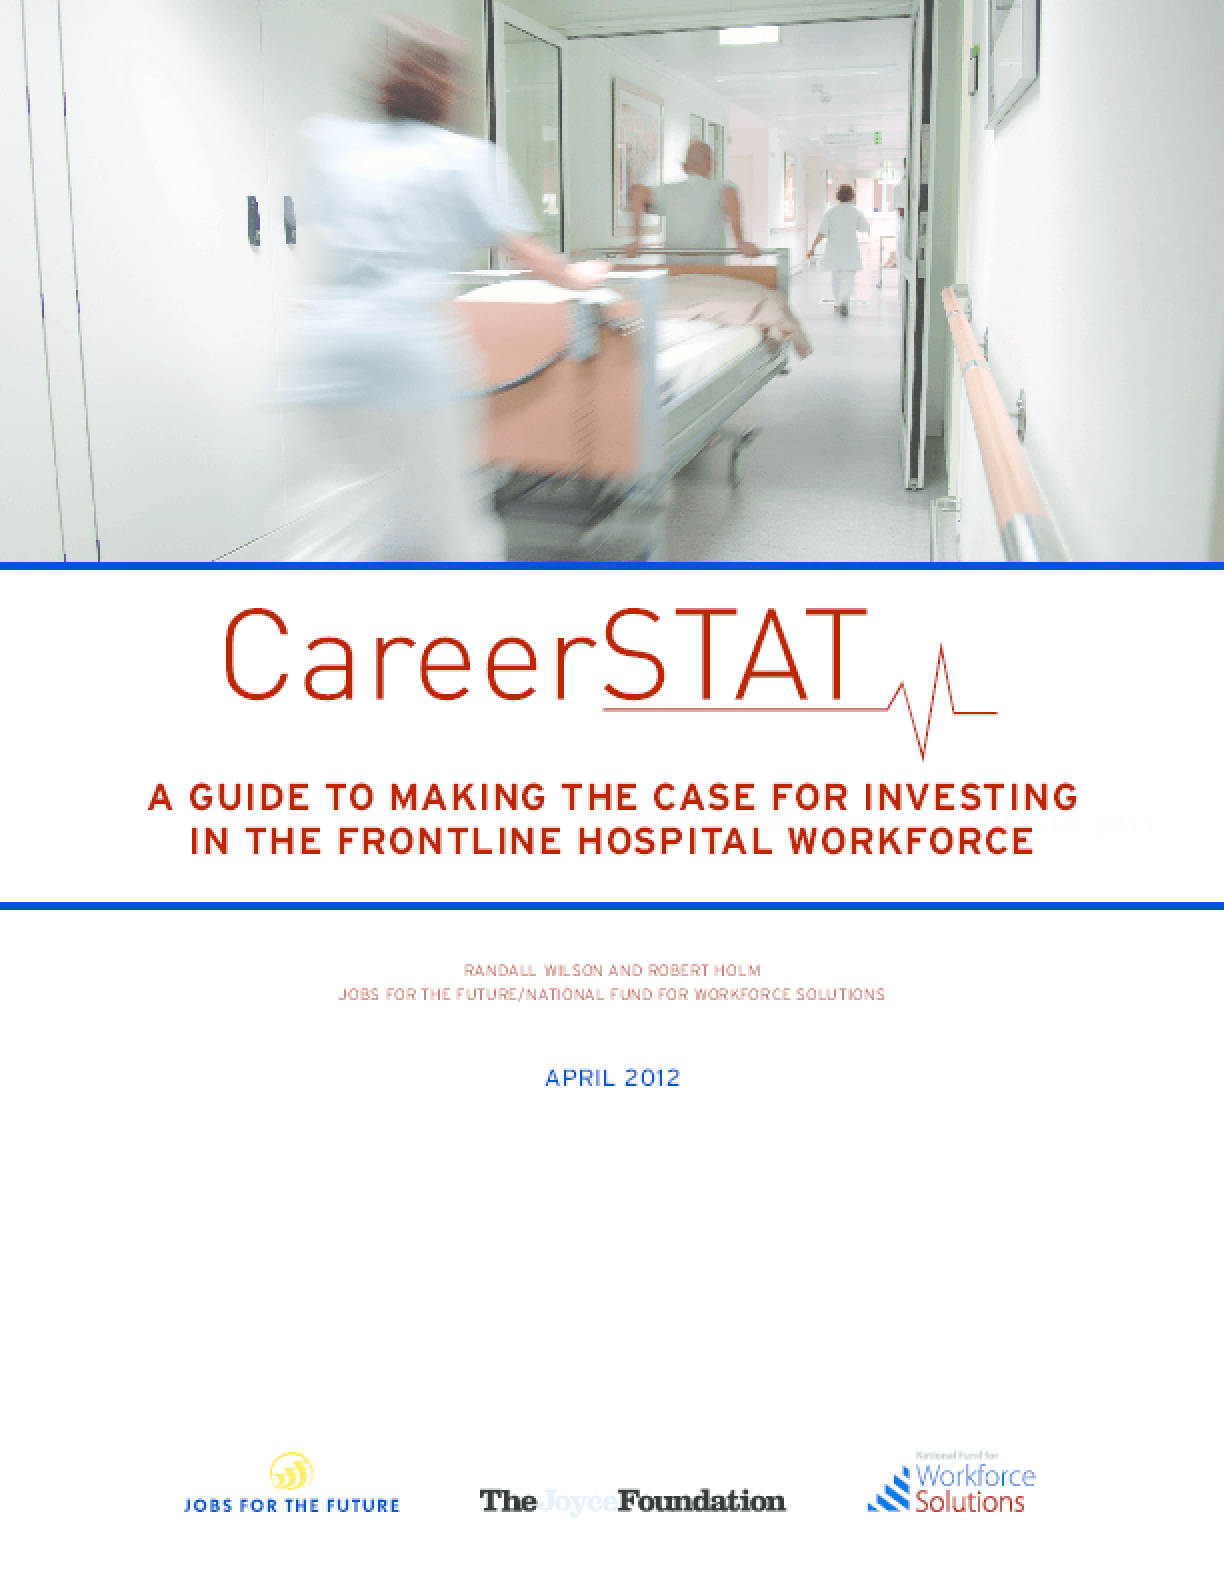 CareerSTAT: A Guide to Making the Case for Investing in the Frontline Hospital Workforce